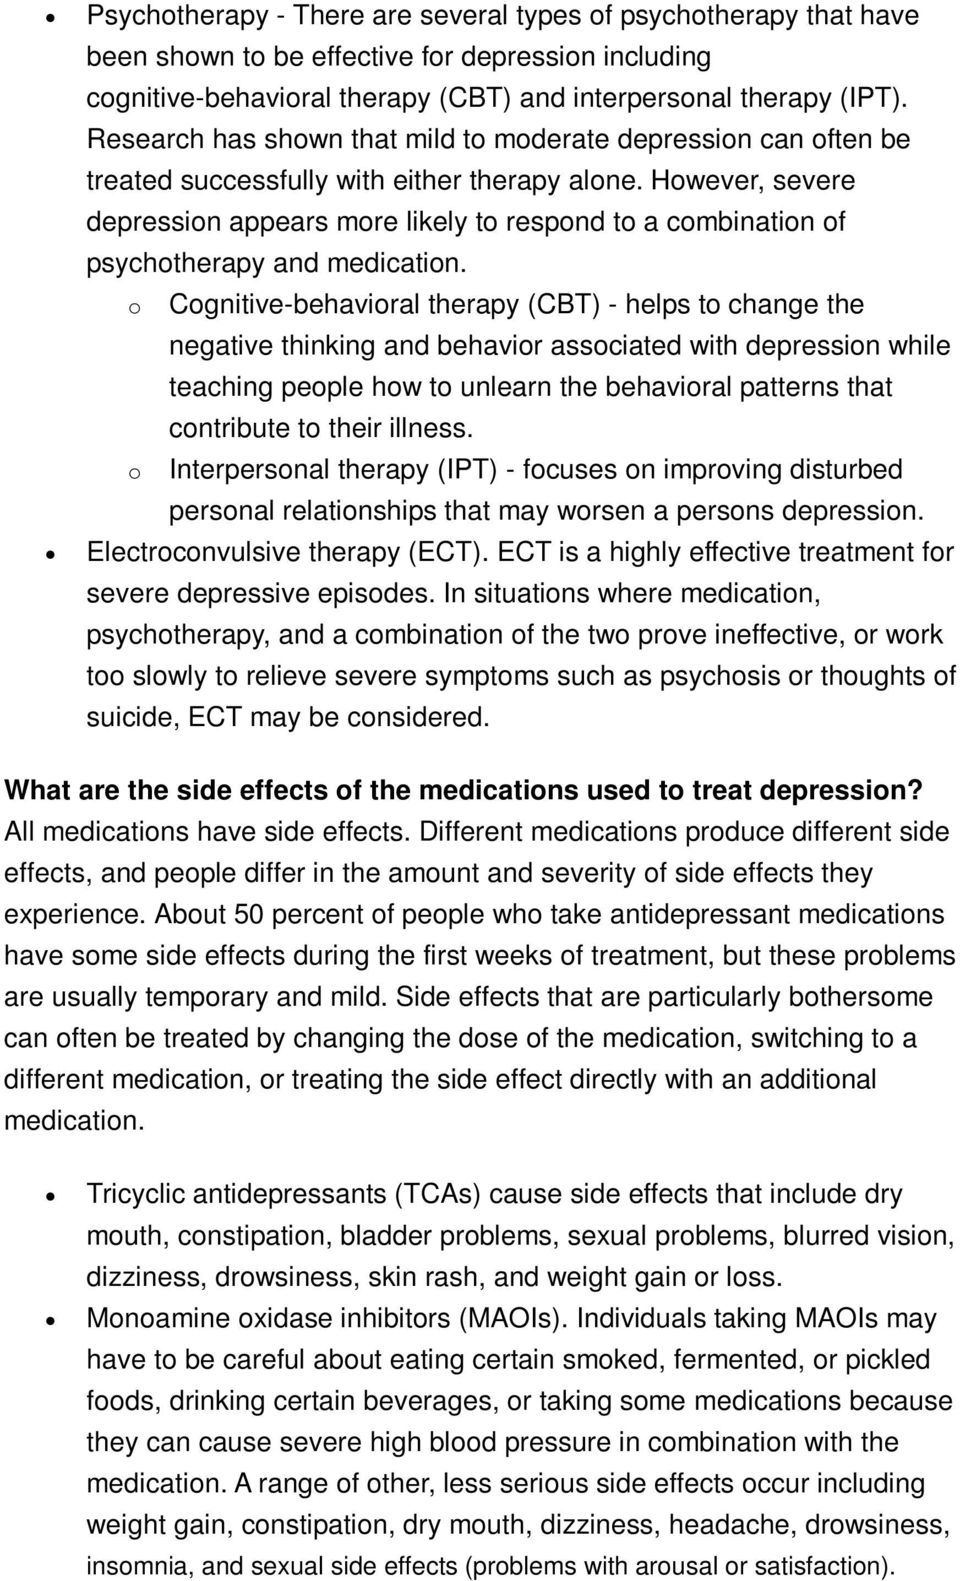 However, severe depression appears more likely to respond to a combination of psychotherapy and medication.